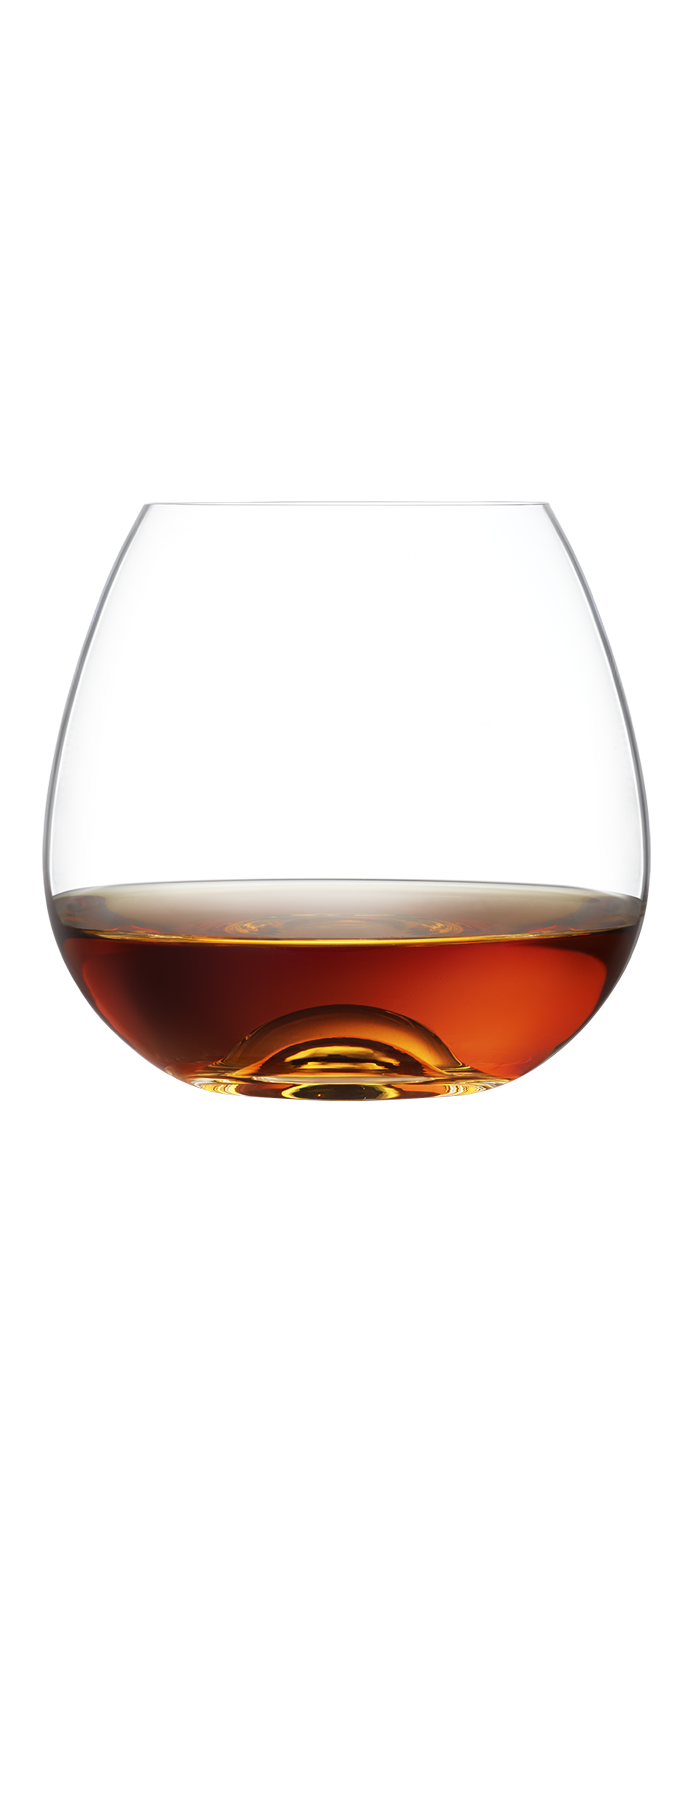 Enjoy METAXA AEN Cask No 2 neat, with the totality of your senses.